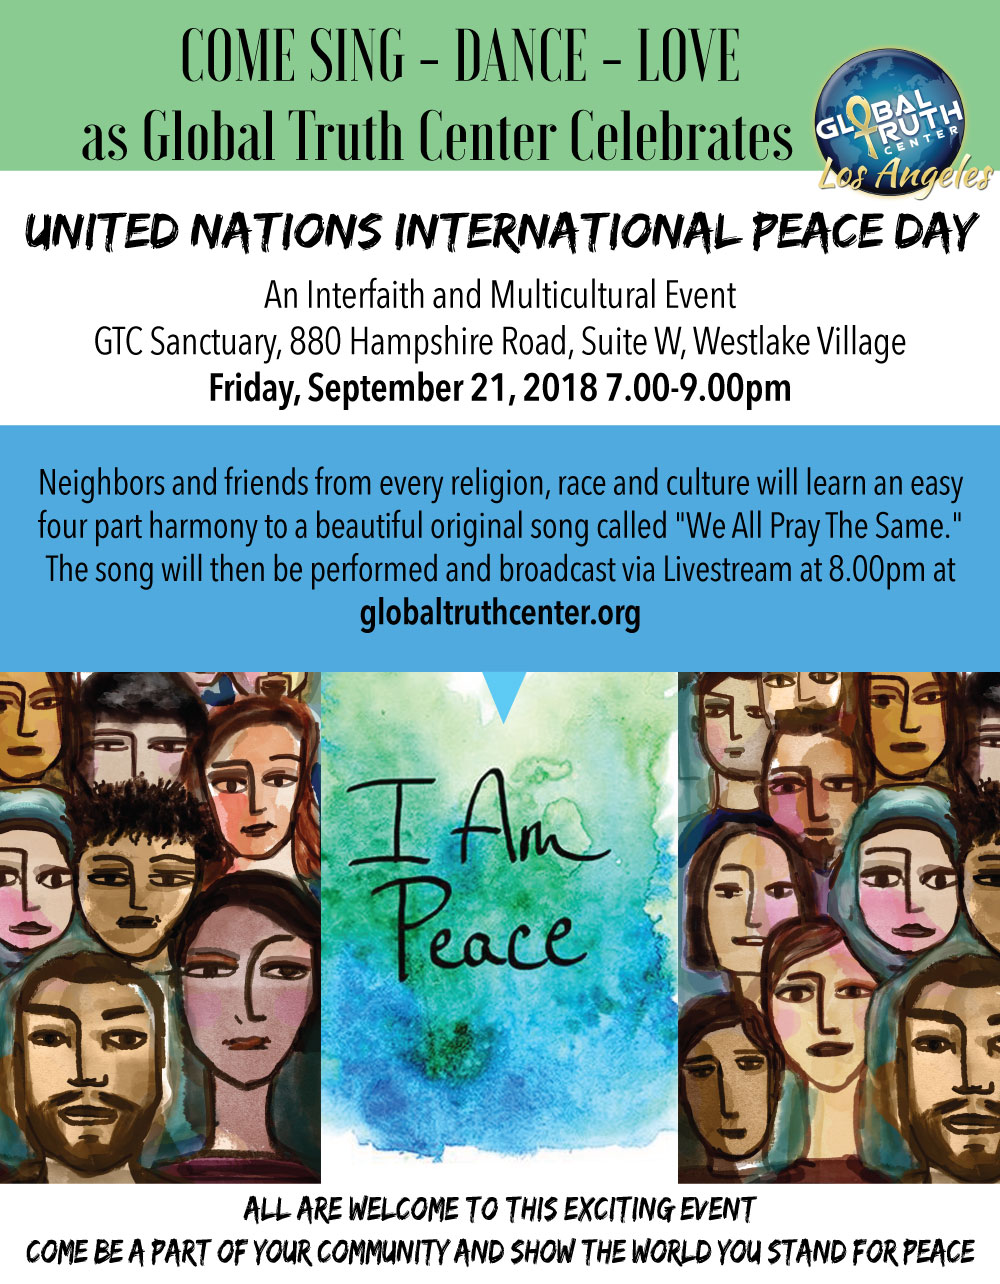 an interfaith and multi-cultural event